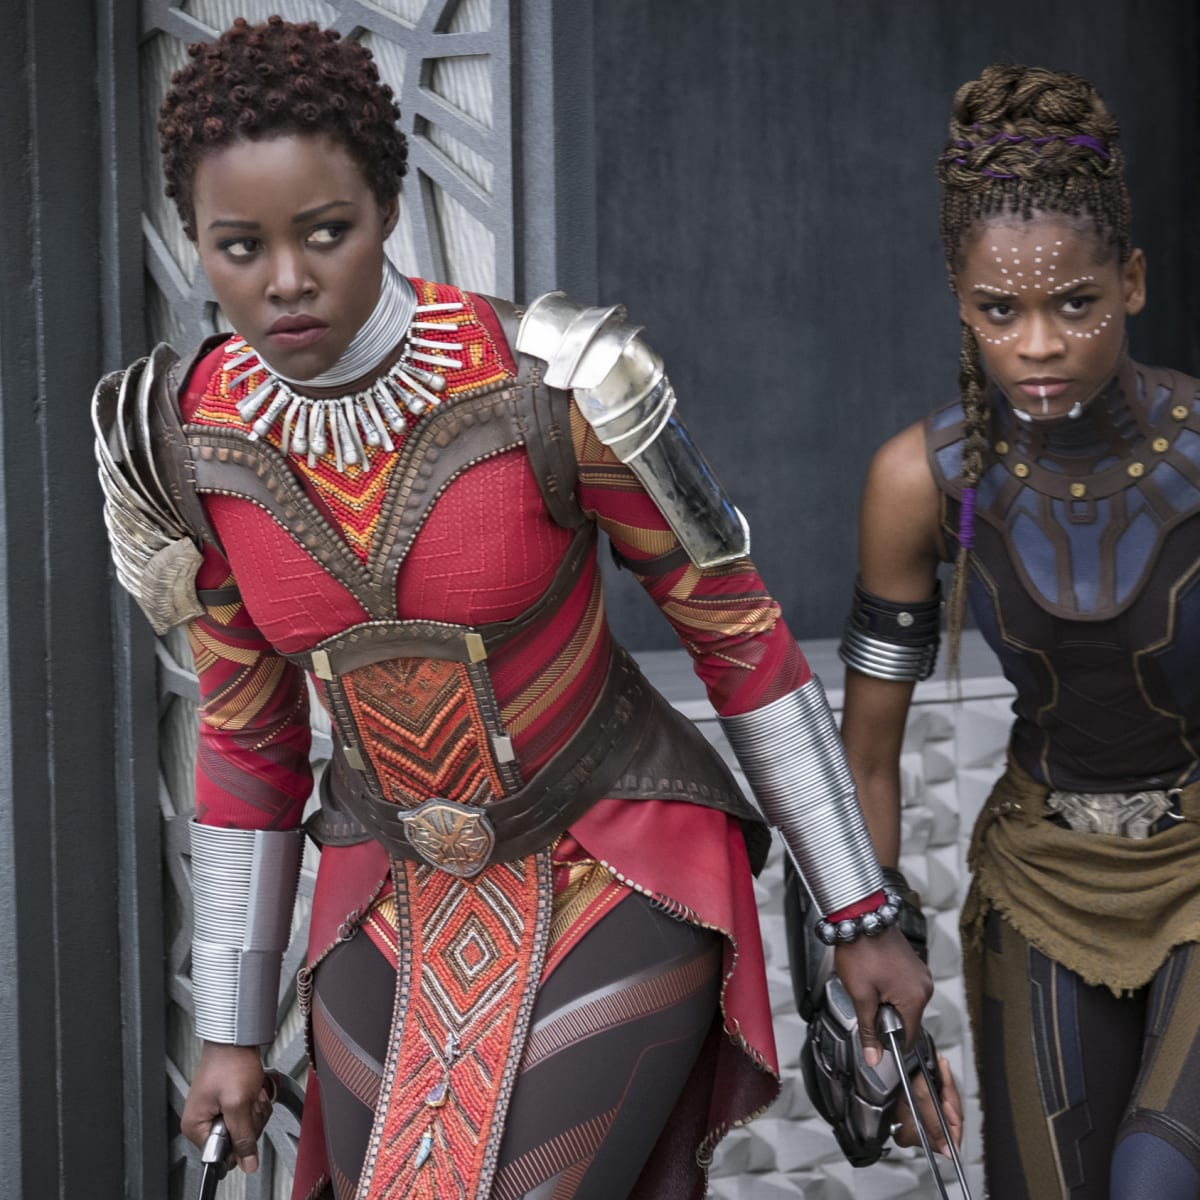 The Costume Hair And Makeup In Marvel S Black Panther Are A Celebration Of Black Culture And Heritage Fashionista